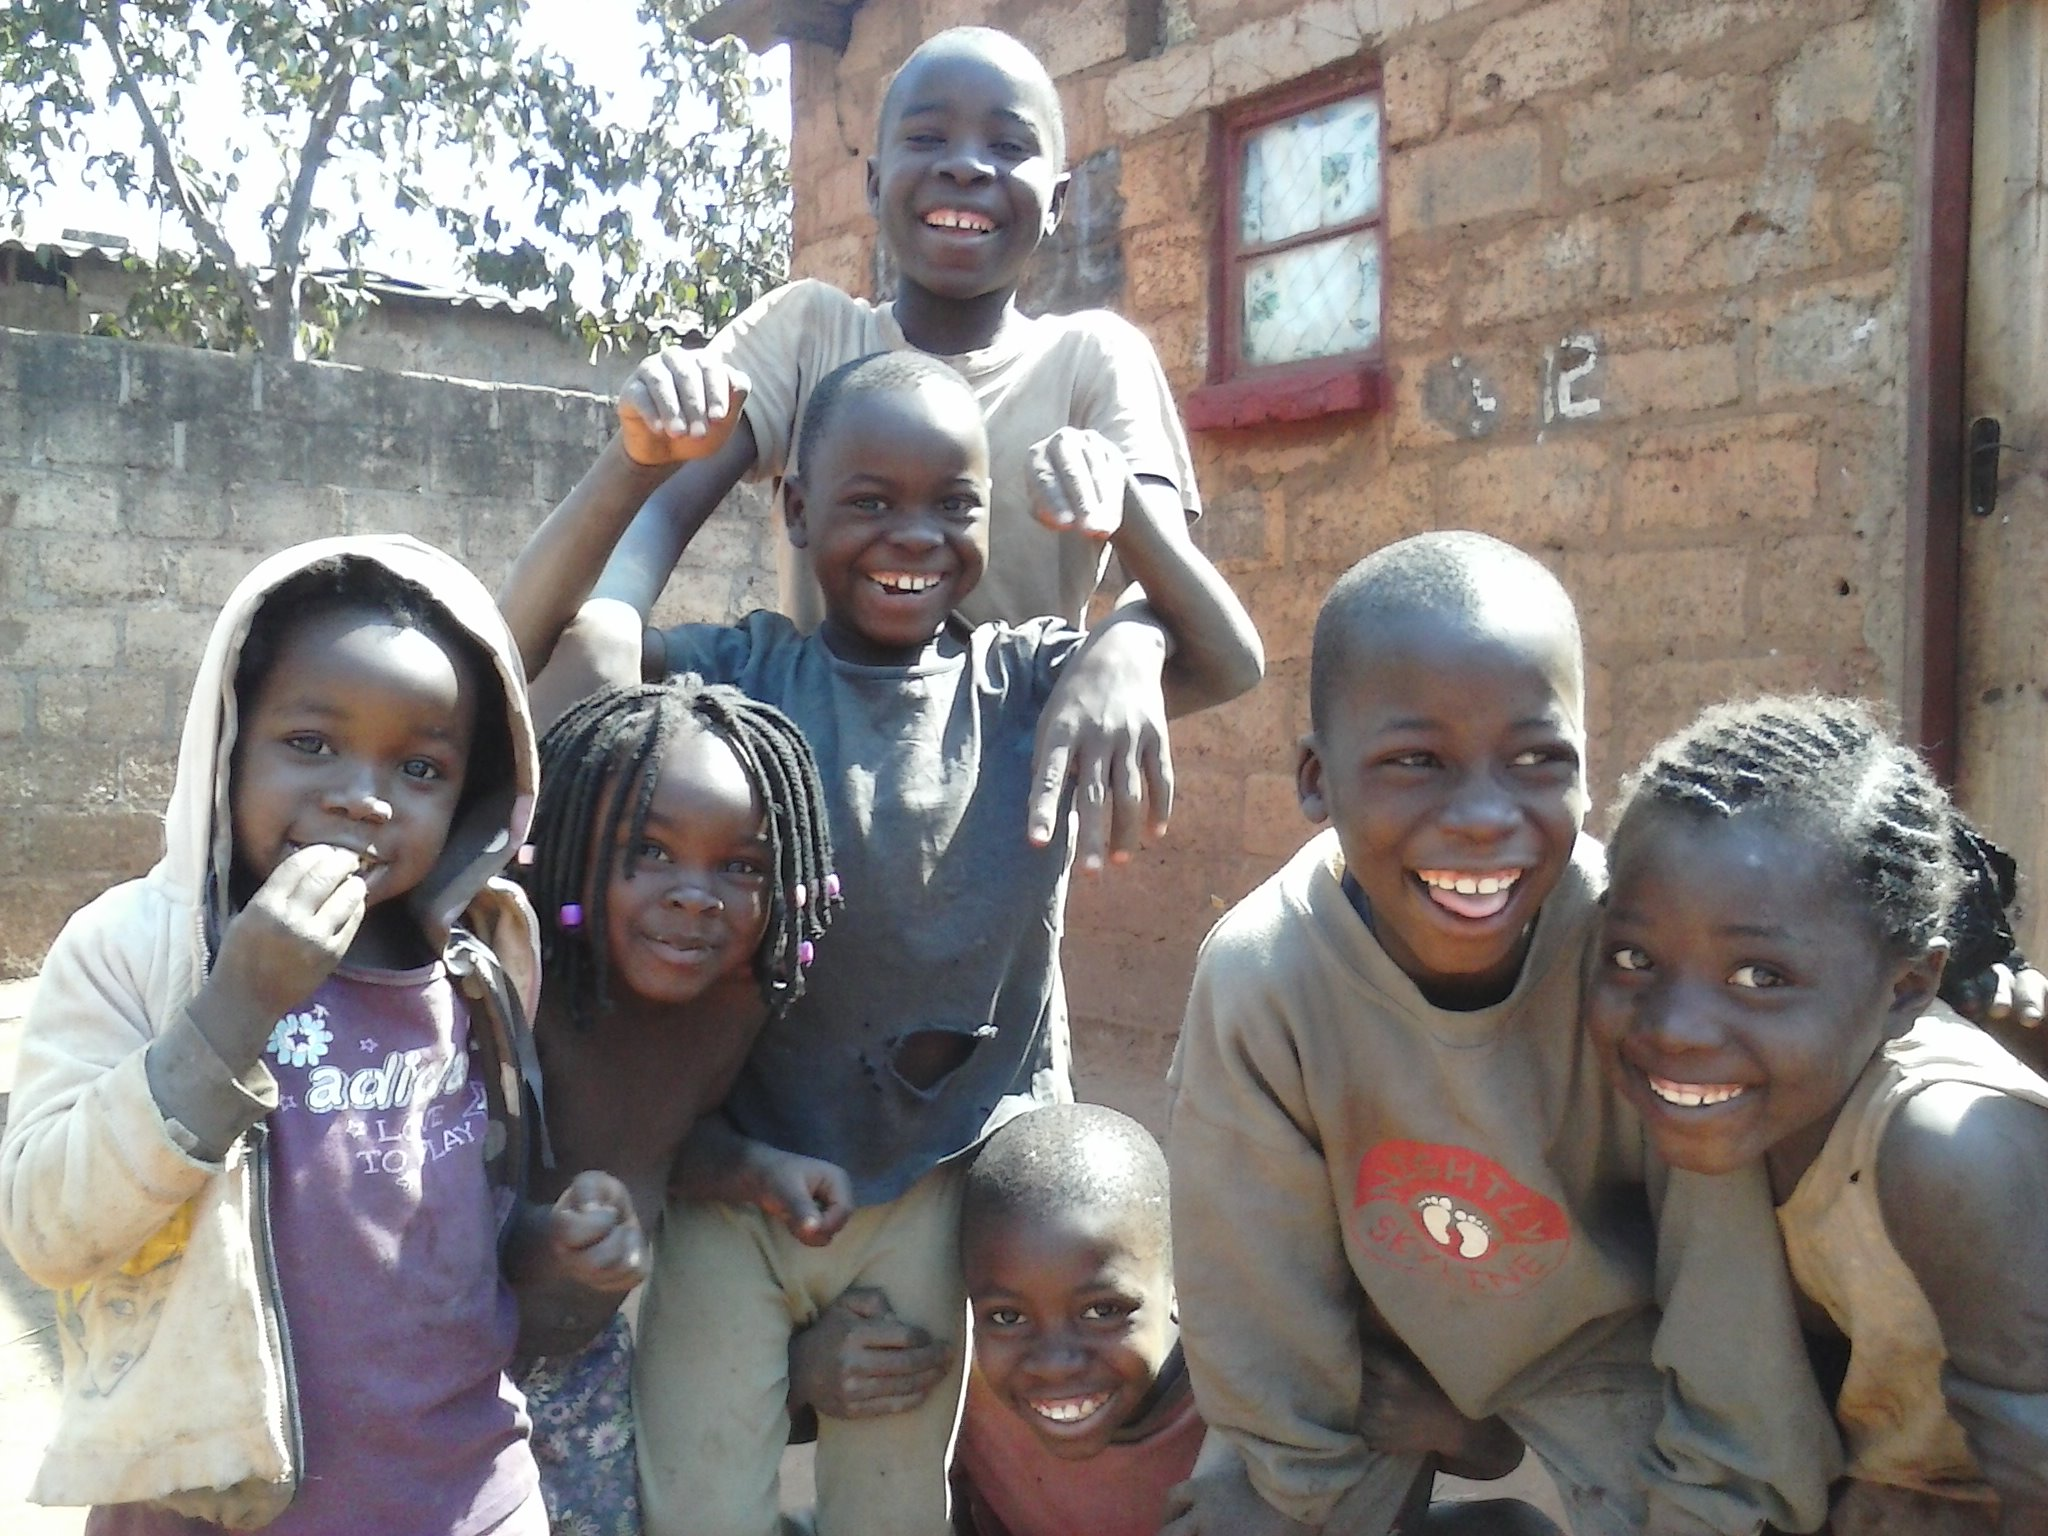 Children from the slum compound of Chainda within Lusaka, Zambia happily pose for a photo taken by Mulenga during a visit in August 2014.